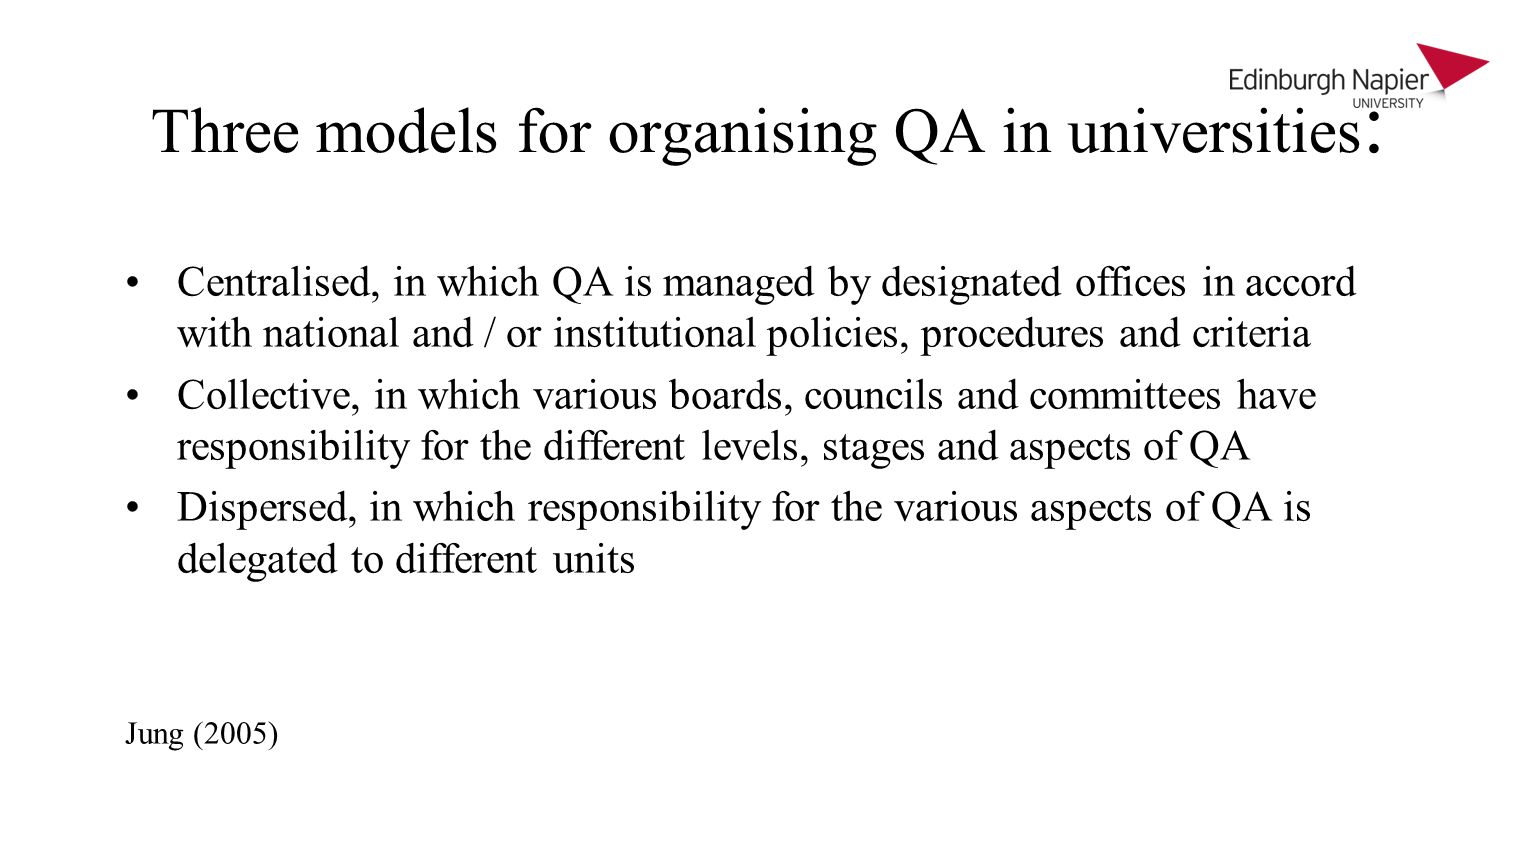 Three models for organising QA in universities : Centralised, in which QA is managed by designated offices in accord with national and / or institutional policies, procedures and criteria Collective, in which various boards, councils and committees have responsibility for the different levels, stages and aspects of QA Dispersed, in which responsibility for the various aspects of QA is delegated to different units Jung (2005)